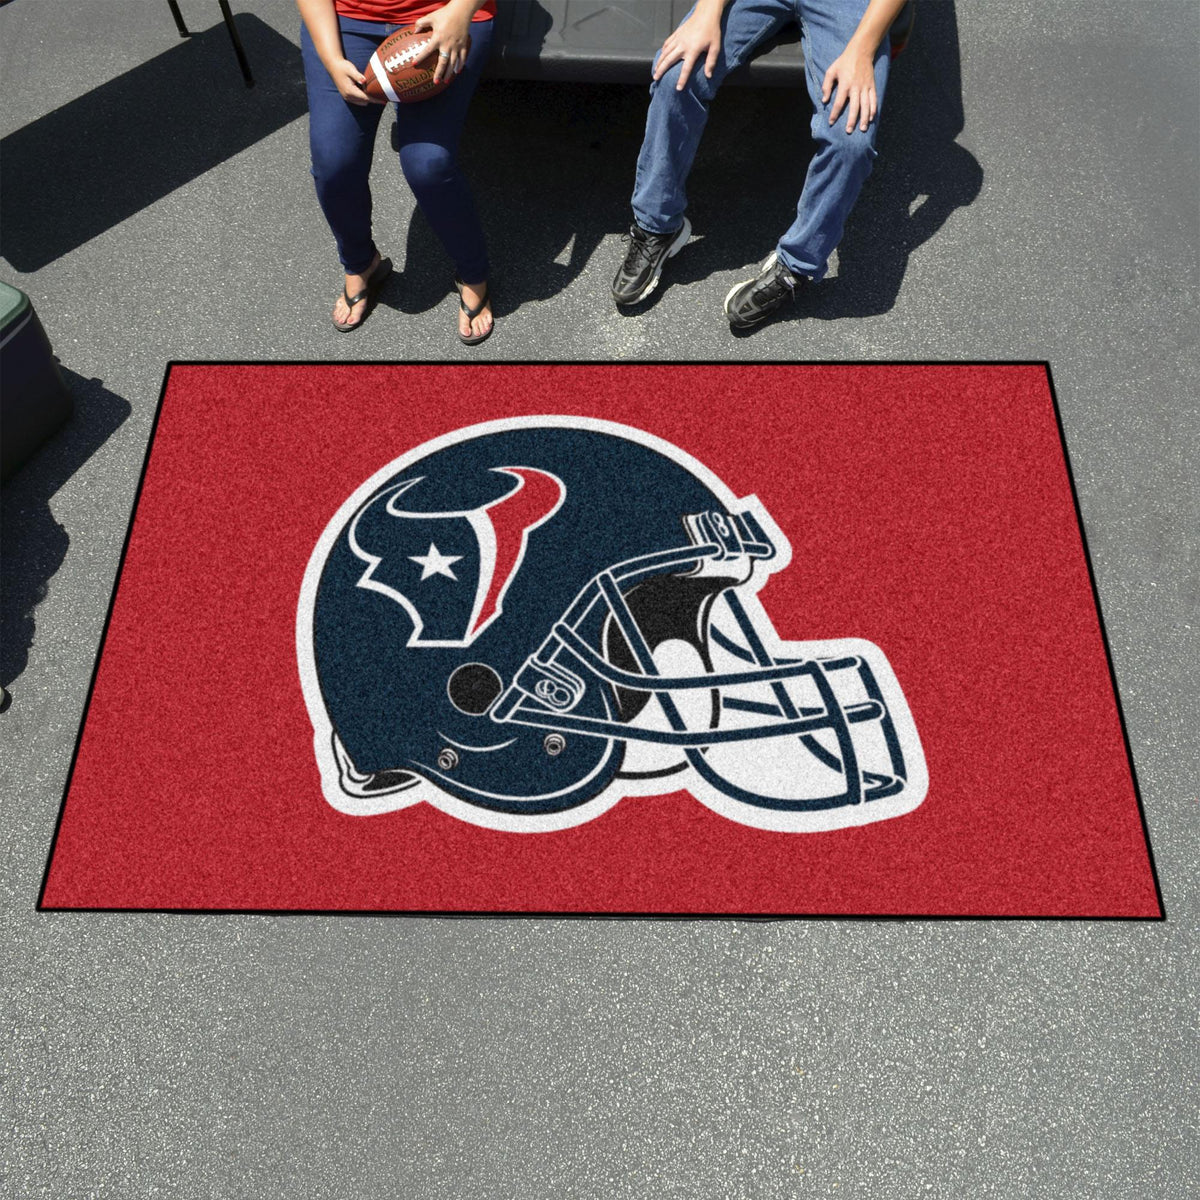 "NFL - Ulti-Mat, 59.5"" x 94.5"" NFL Mats, Rectangular Mats, Ulti-Mat, NFL, Home Fan Mats Houston Texans"